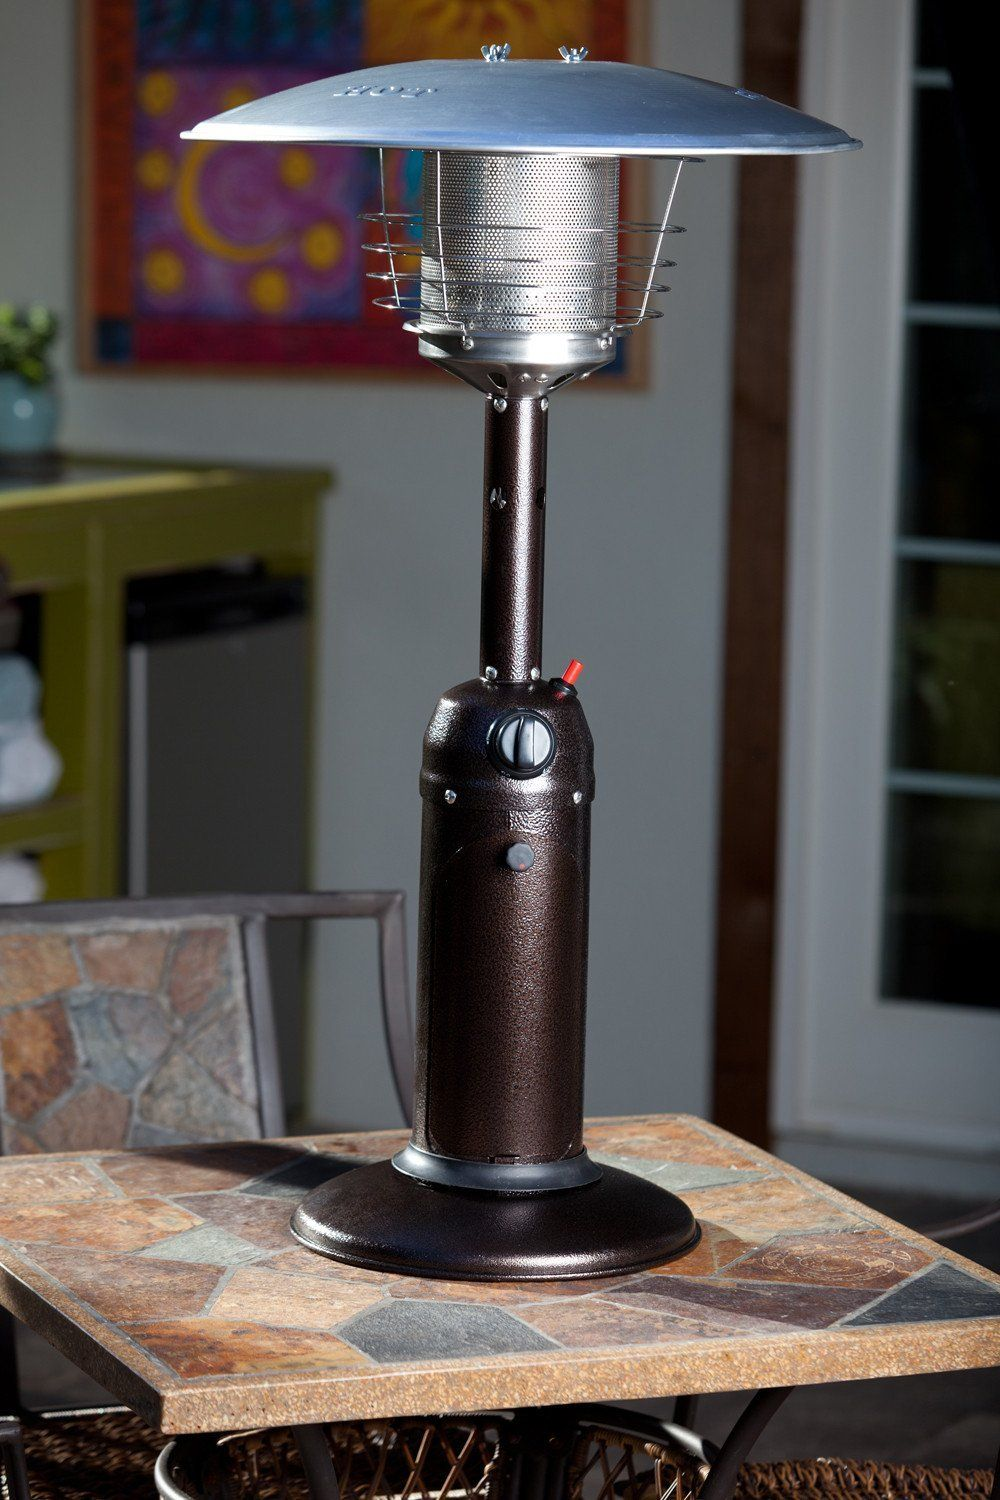 Fire Sense Table Top Propane Patio Heater In Stainless Steel Or Bronze Perfect For Outdoor Entertaining This Tab Tabletop Patio Heater Patio Heater Fire Sense